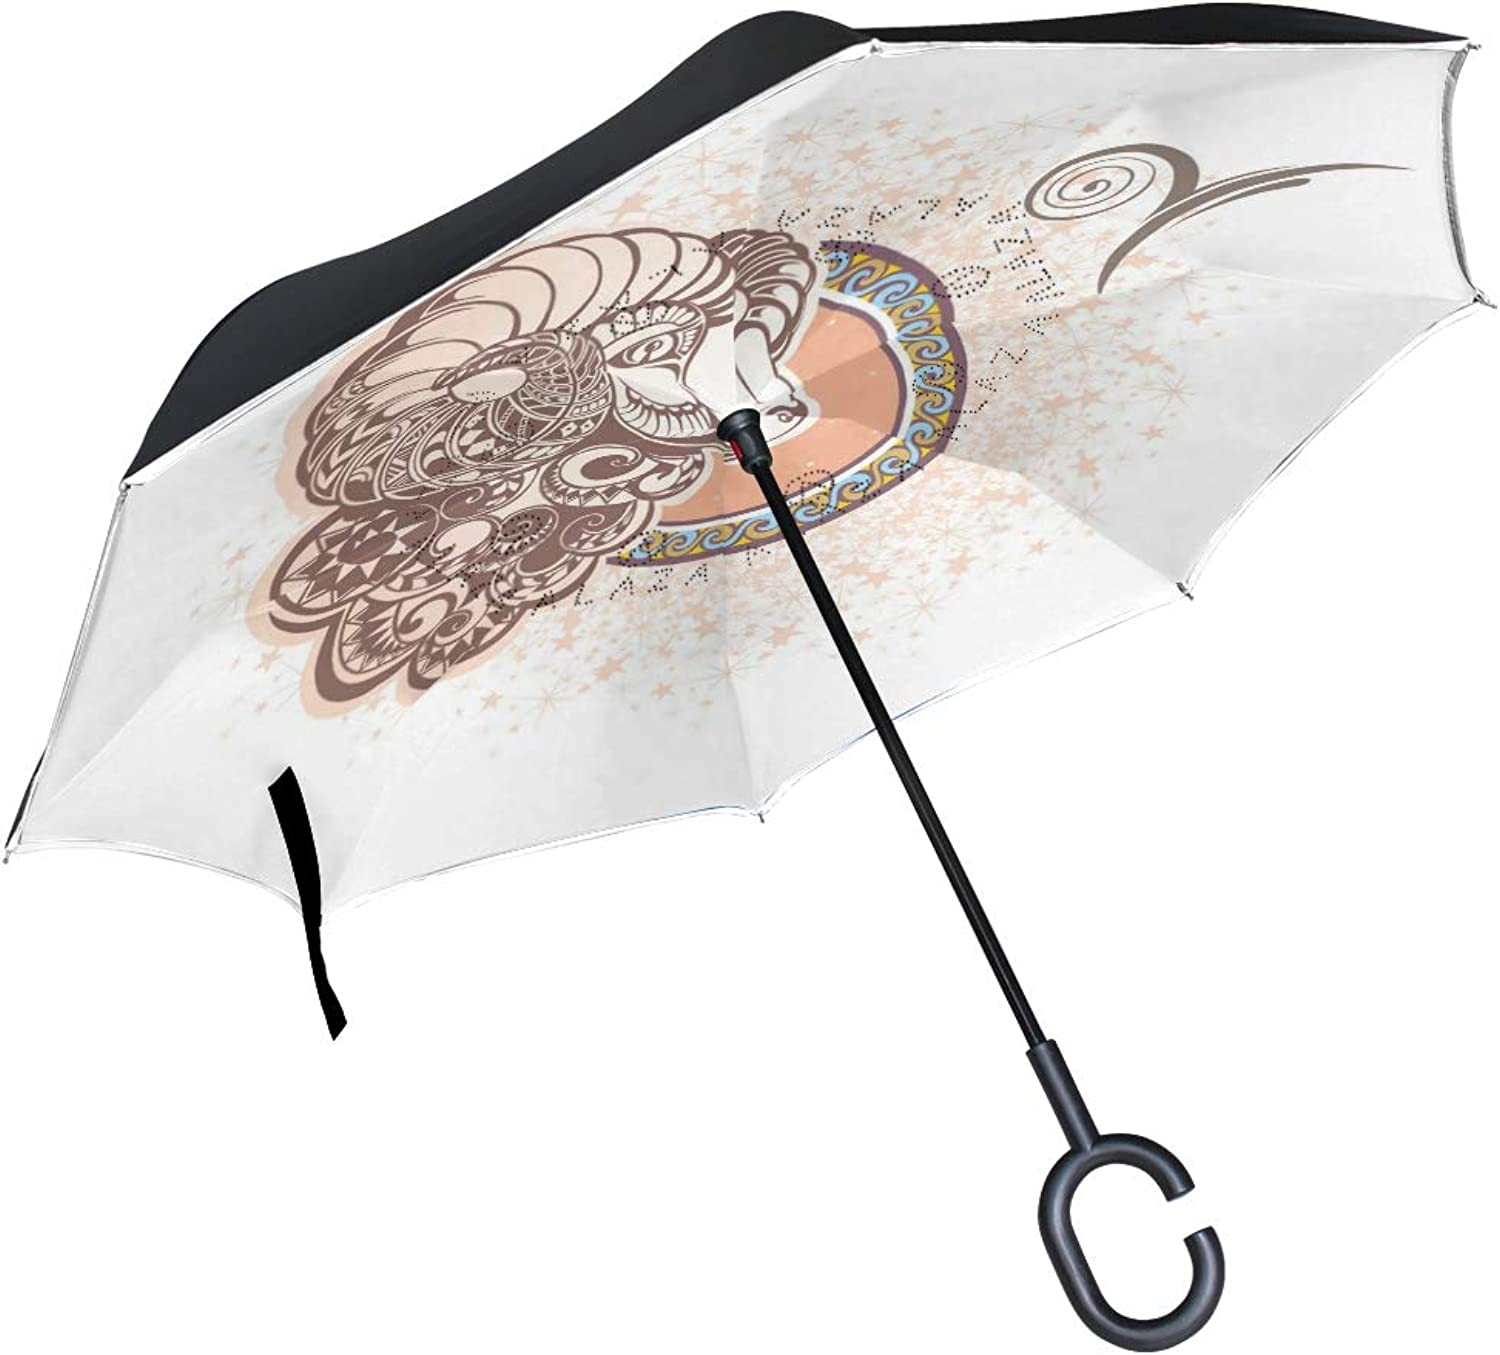 Ingreened Umbrella Double Layer Reverse Umbrella Waterproof Windproof UV Predection Straight Umbrella with CShaped Handle Aries Digital Printing for Car Rain Outdoor Use